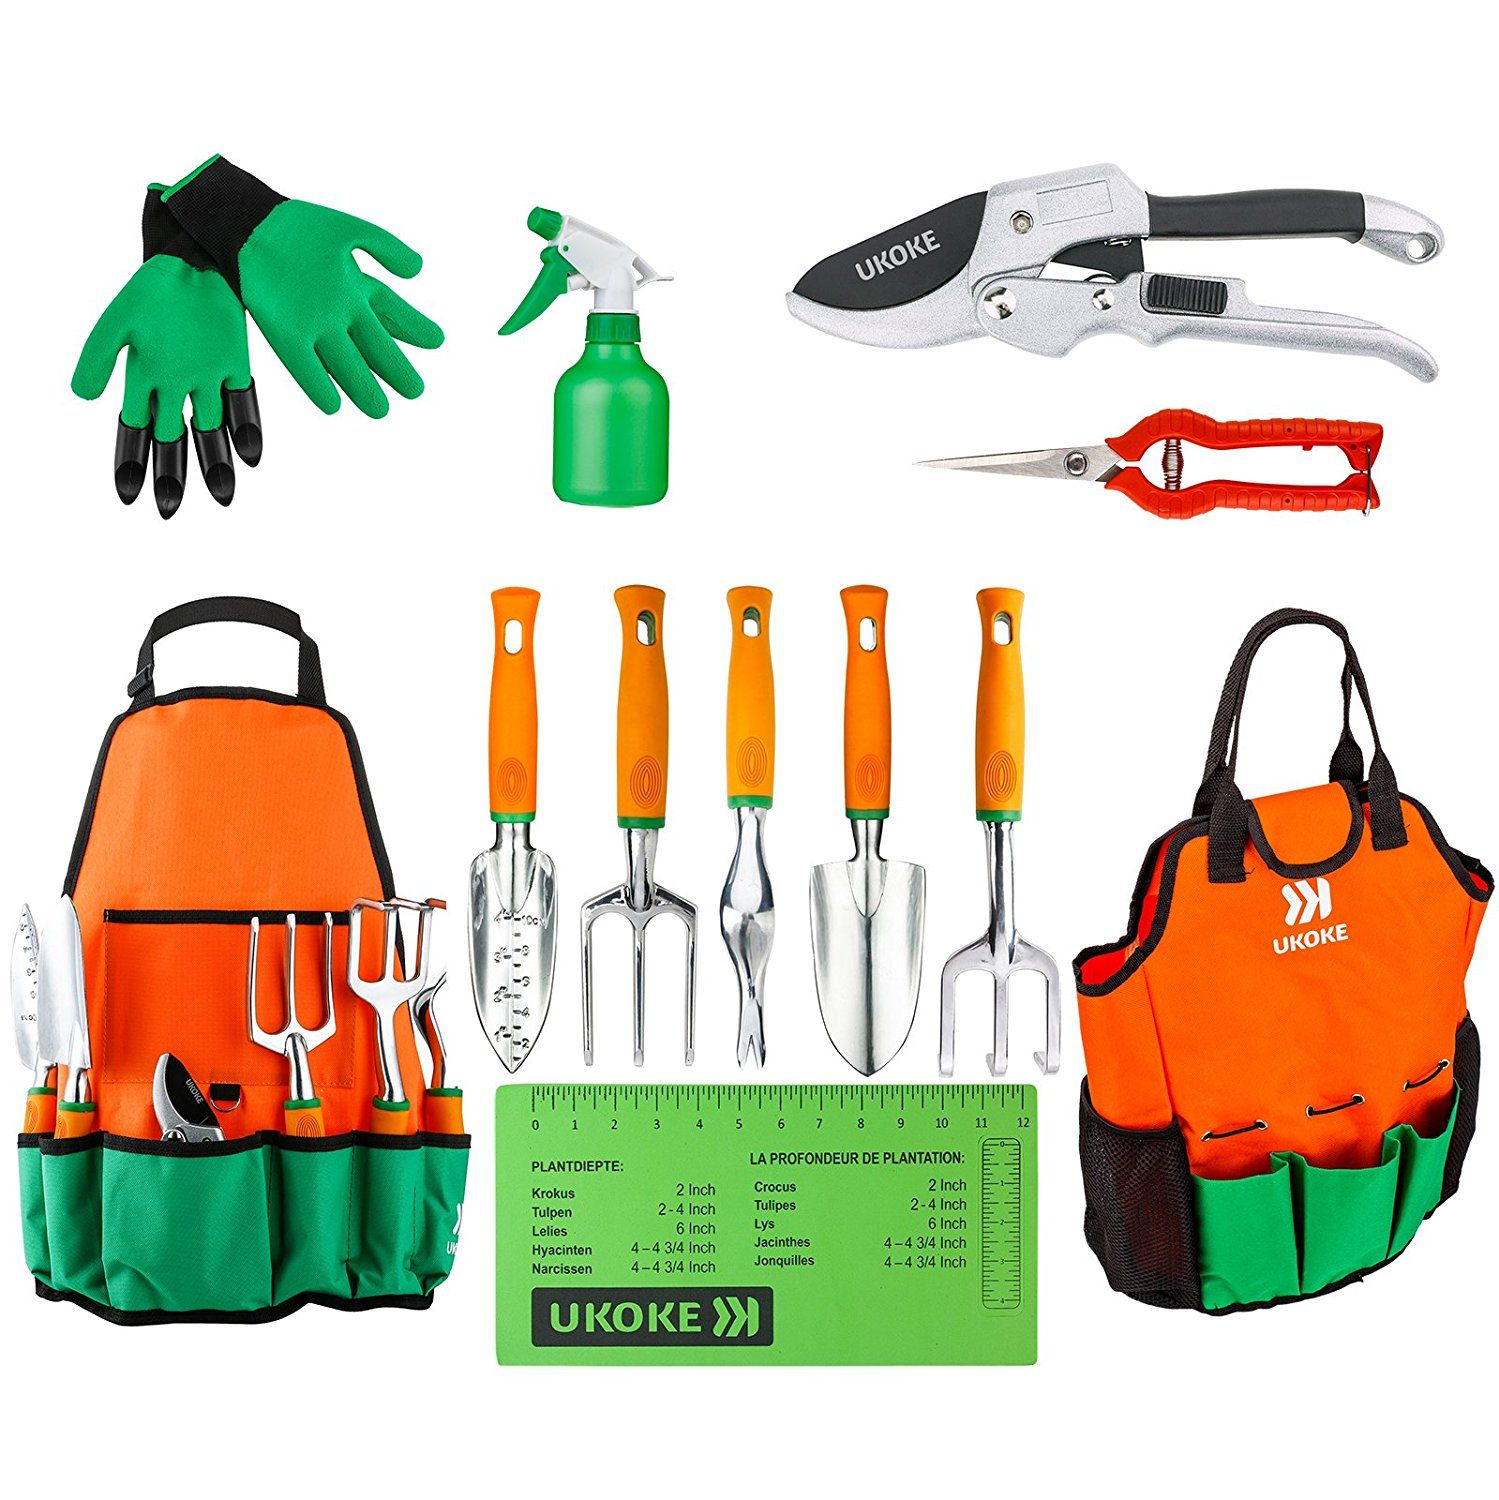 7cf39d3540651c6f40b44e23088b66d1 - Bloom 4 Piece Gardening Tool Set